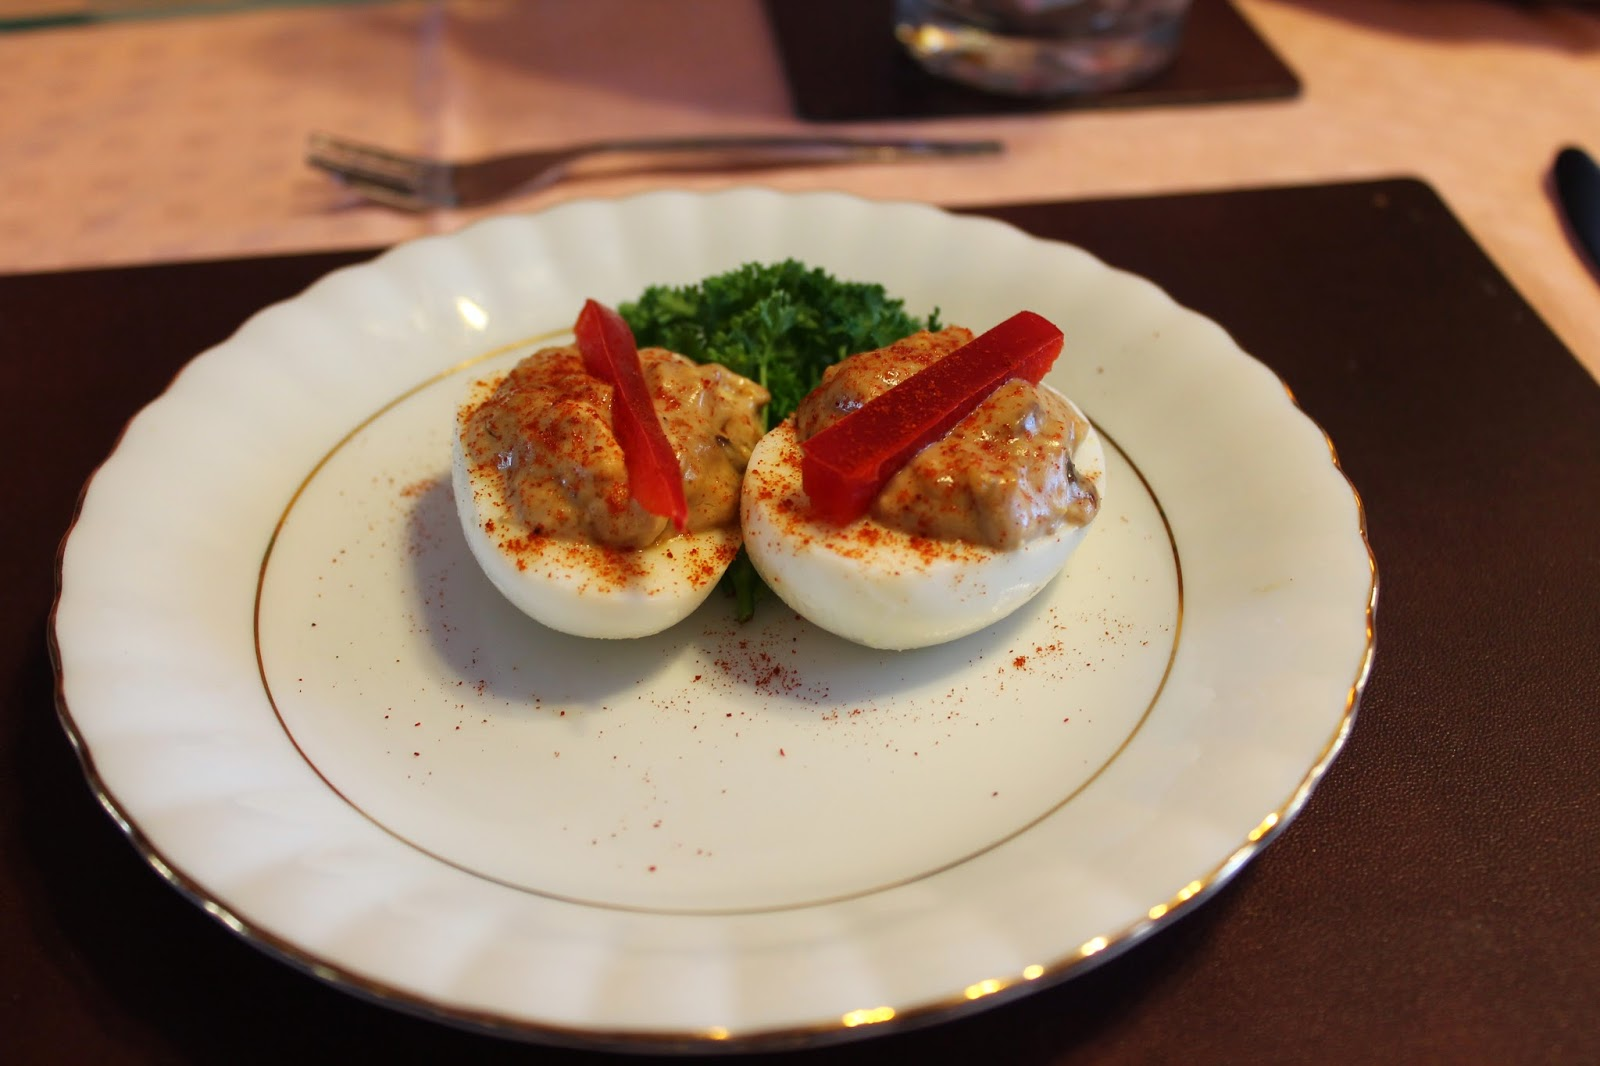 devilled eggs via lovebirds vintage